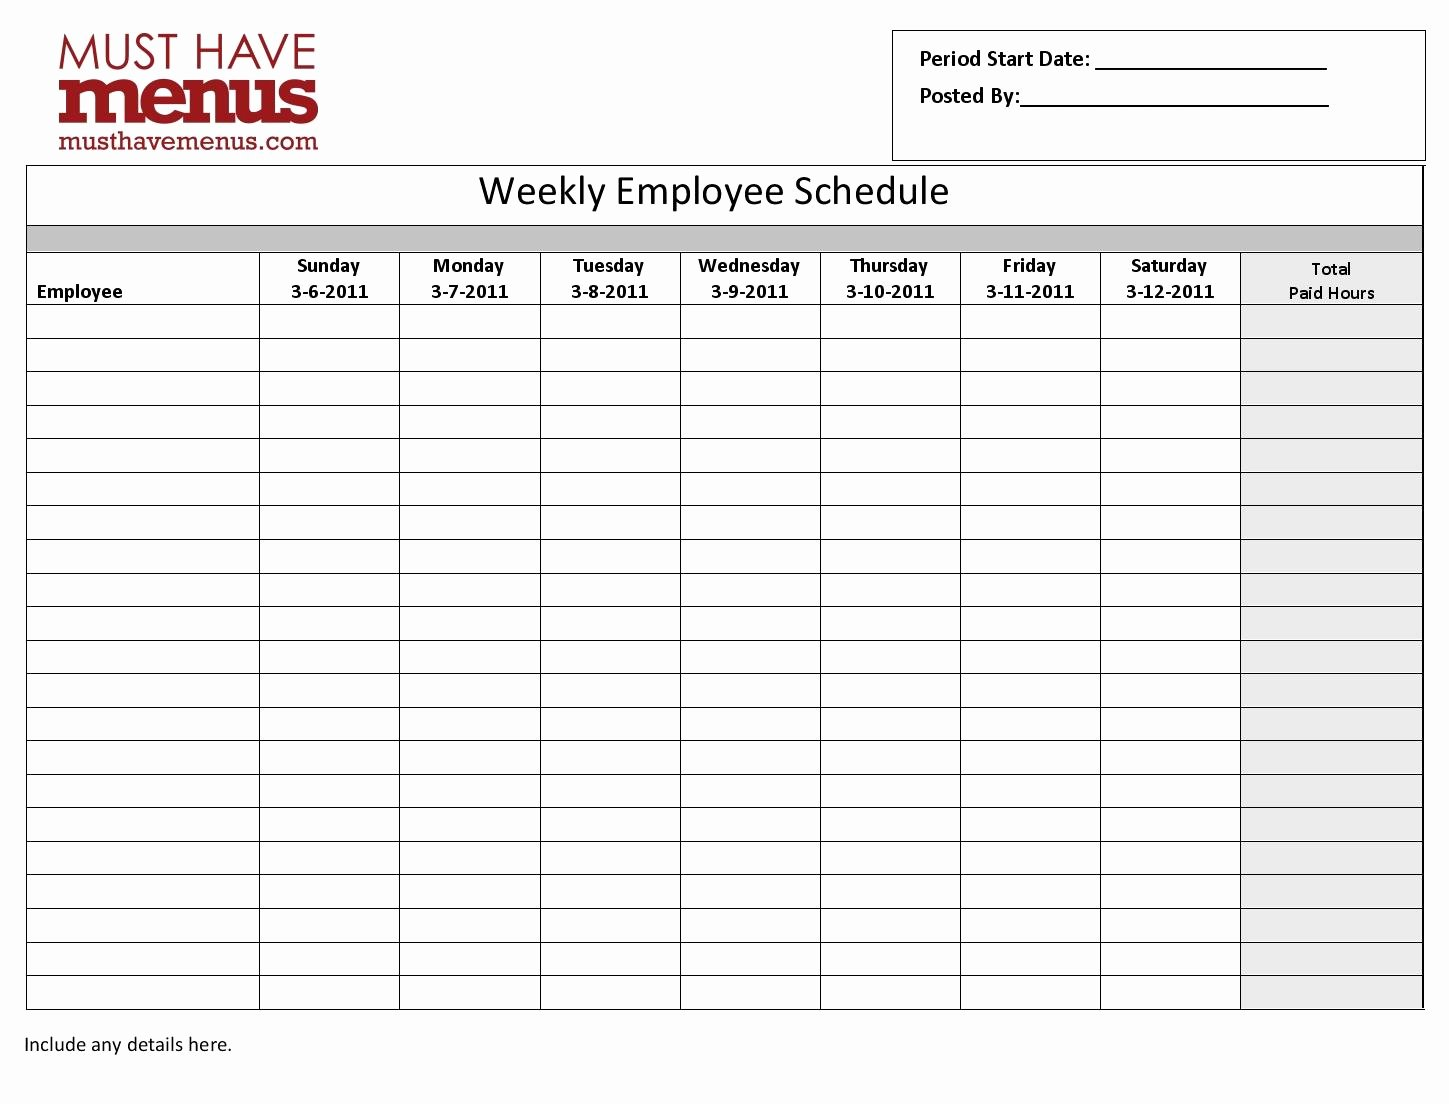 Employee Weekly Schedule Template Inspirational Weekly Employee Schedule Template